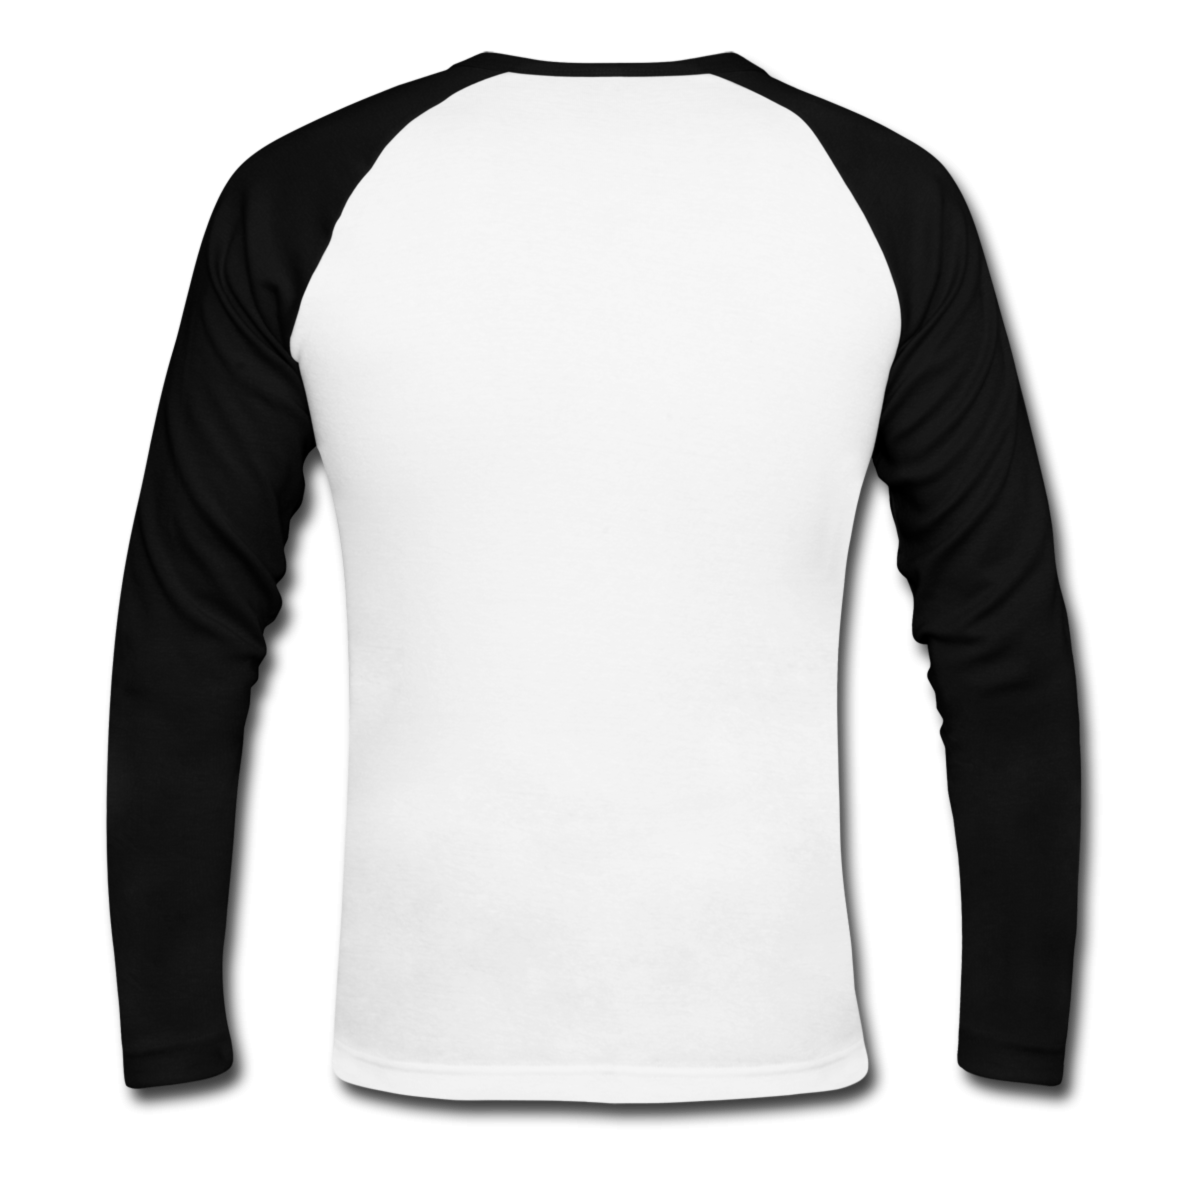 jersey vector long sleeve